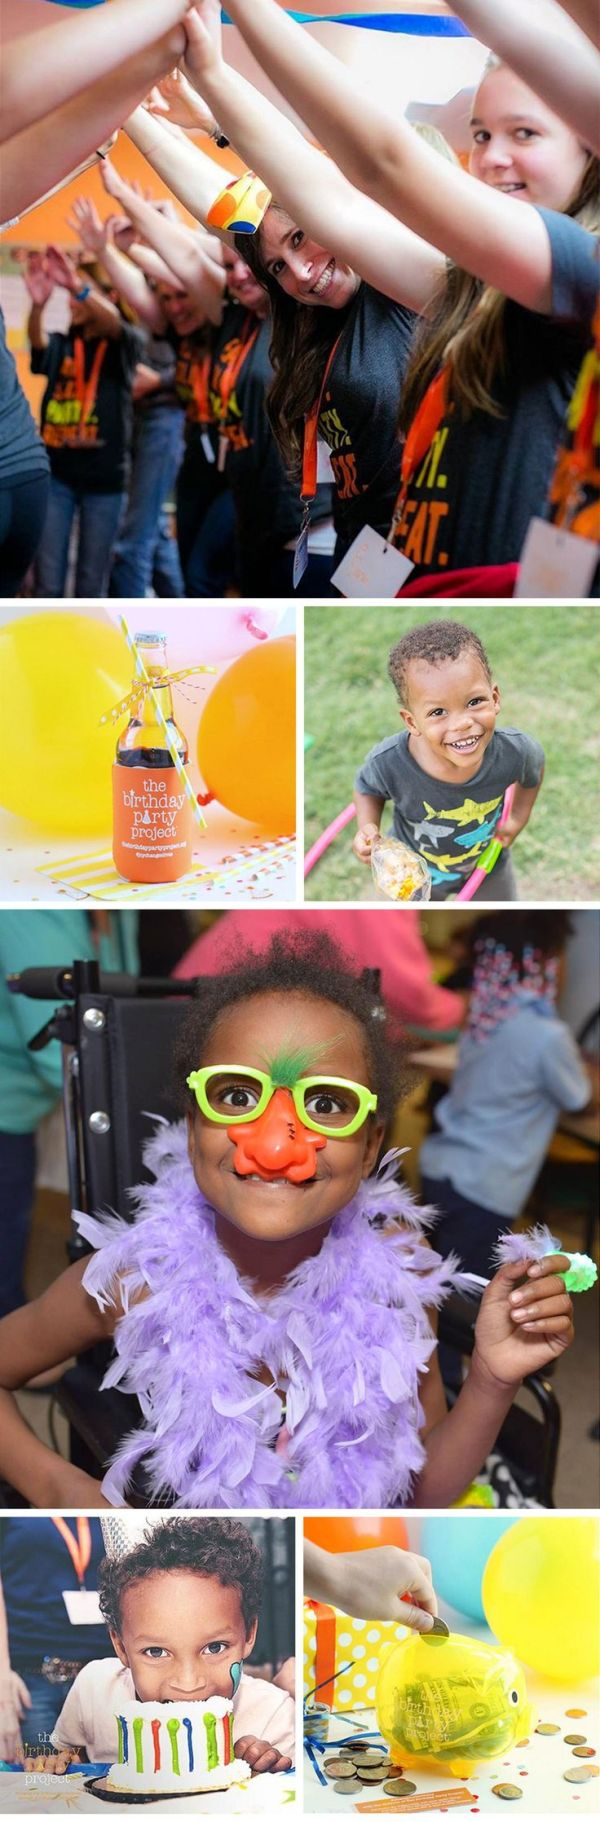 17 Best images about Kid's Birthday Party on Pinterest ...